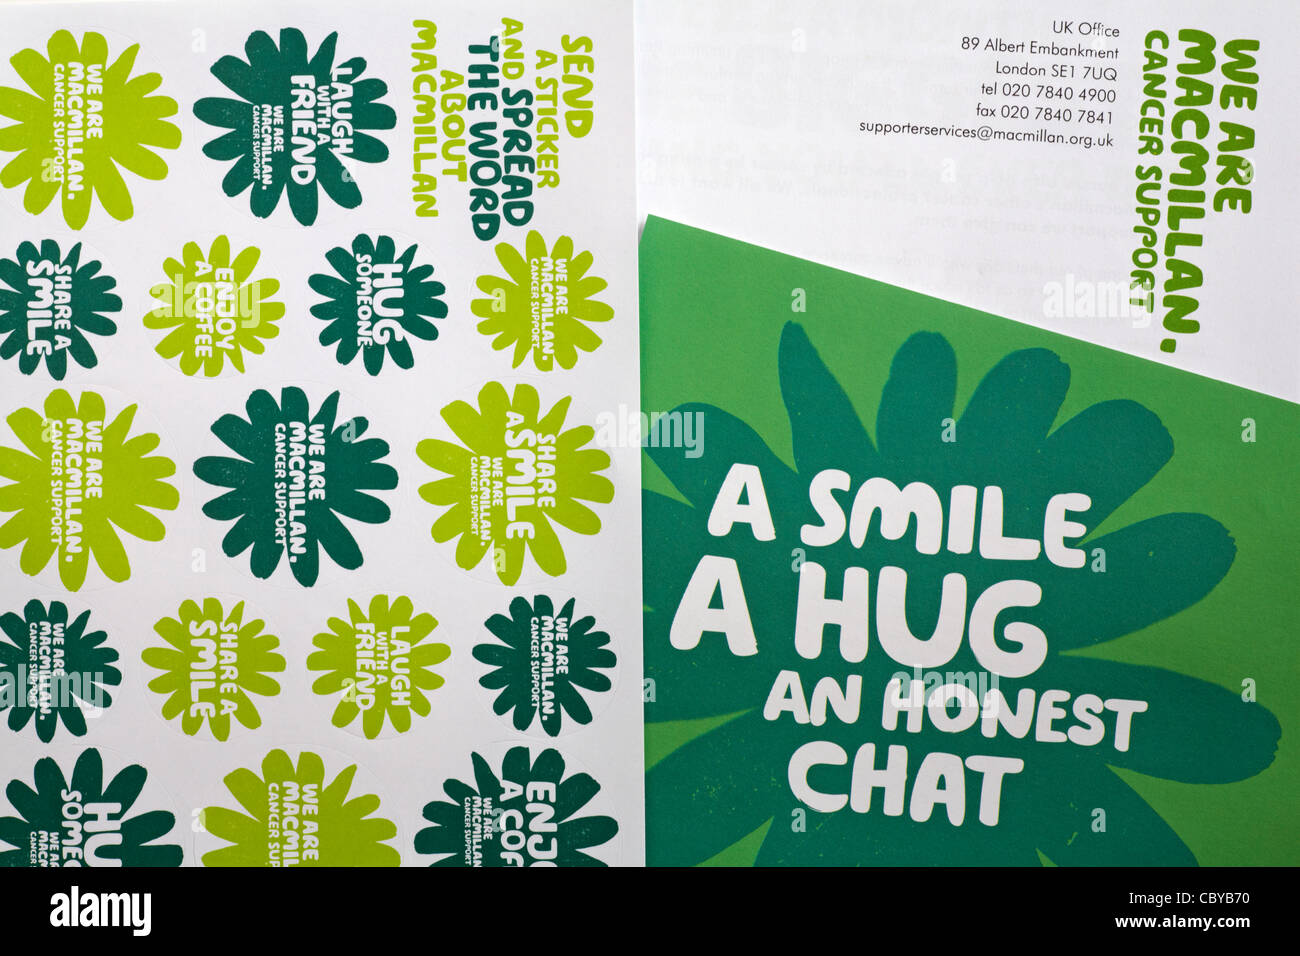 Correspondence and stickers received from Macmillan Cancer Support - Stock Image